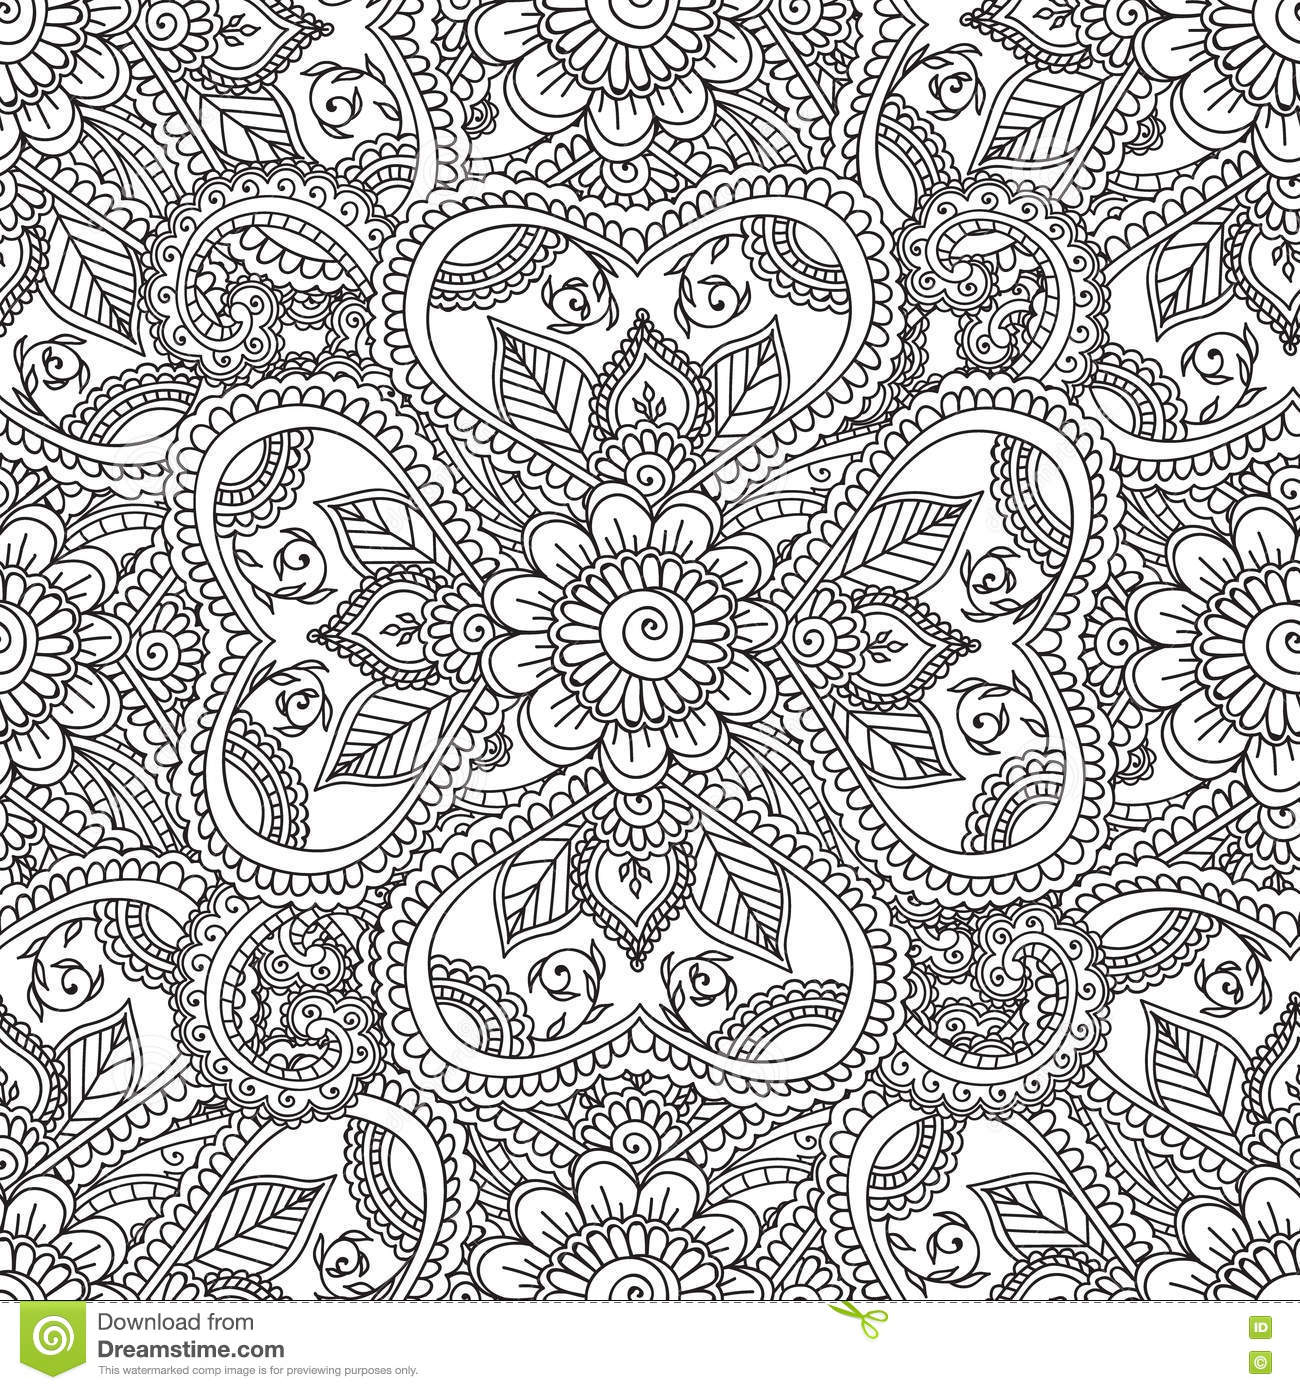 Design coloring pages for adults-5841